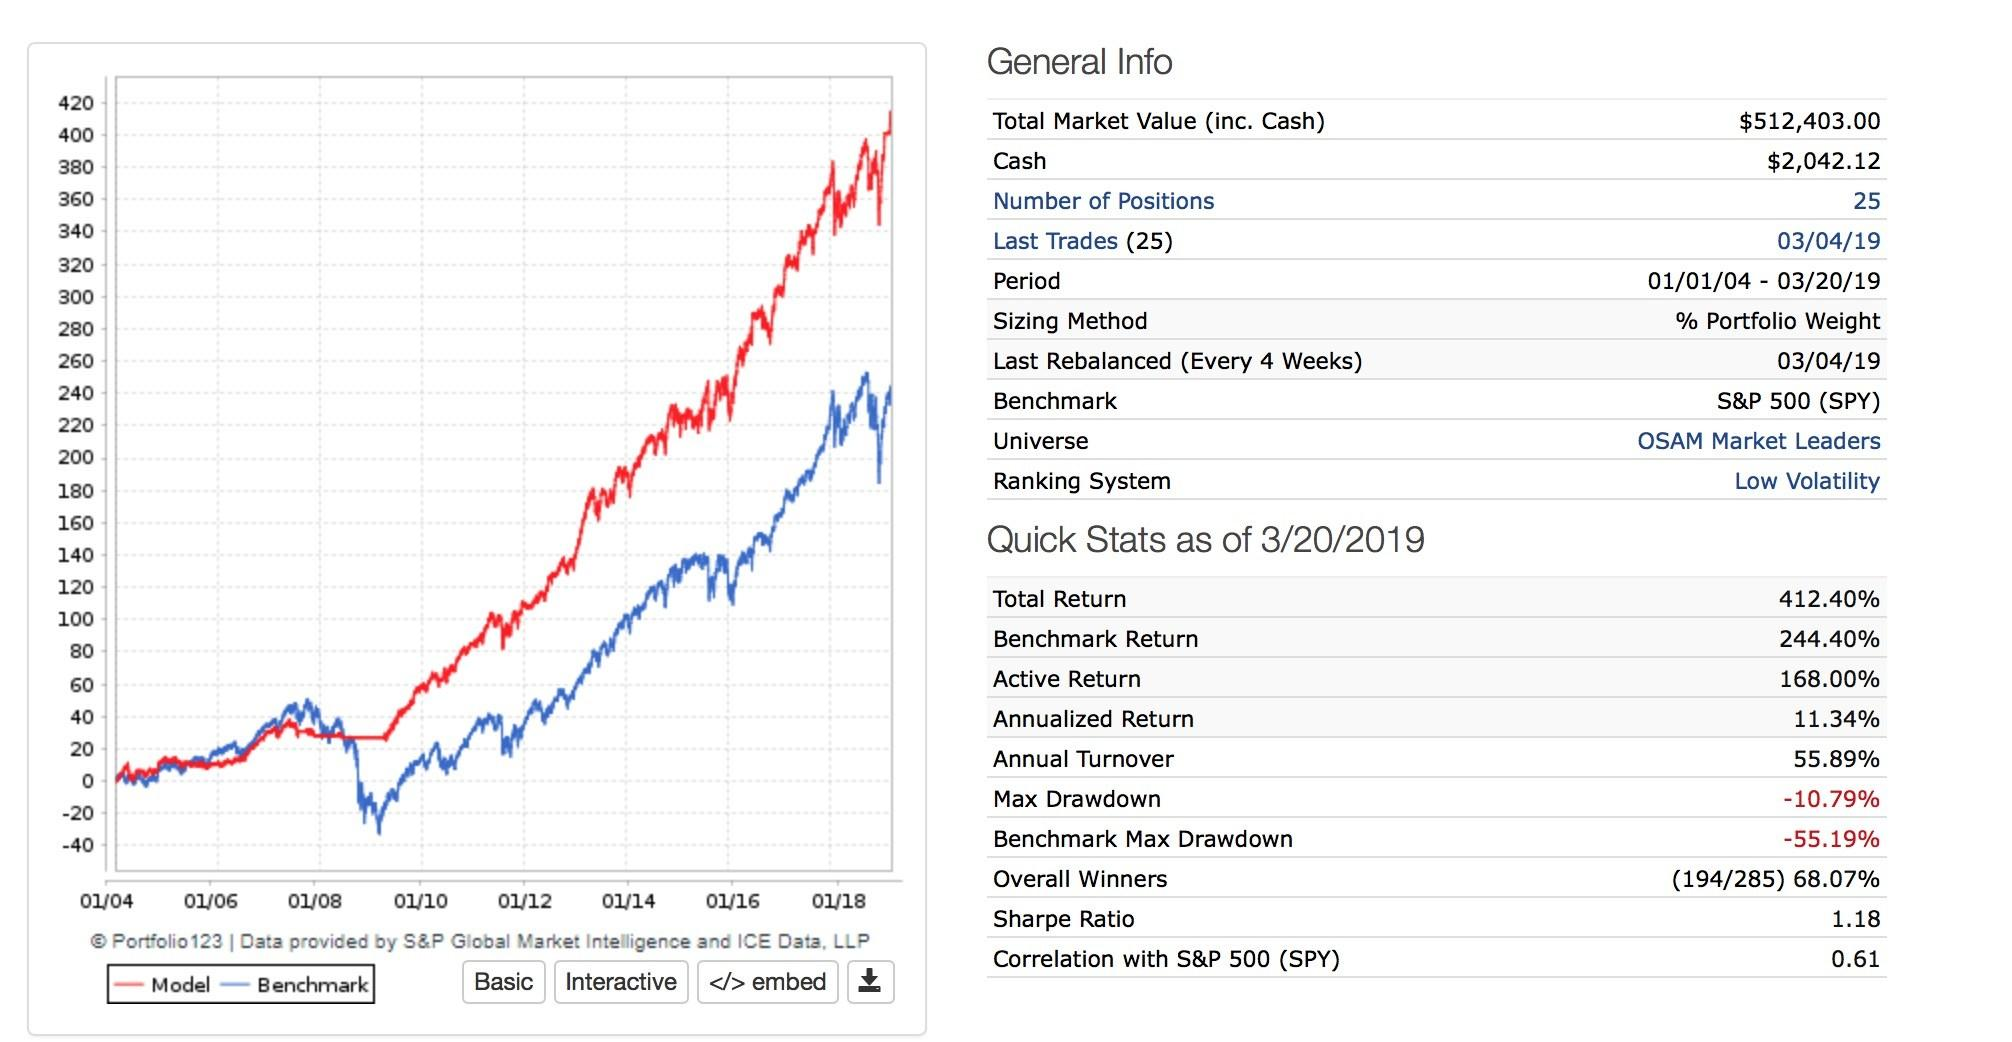 Quant Investing: Low Volatility Strategies | Seeking Alpha